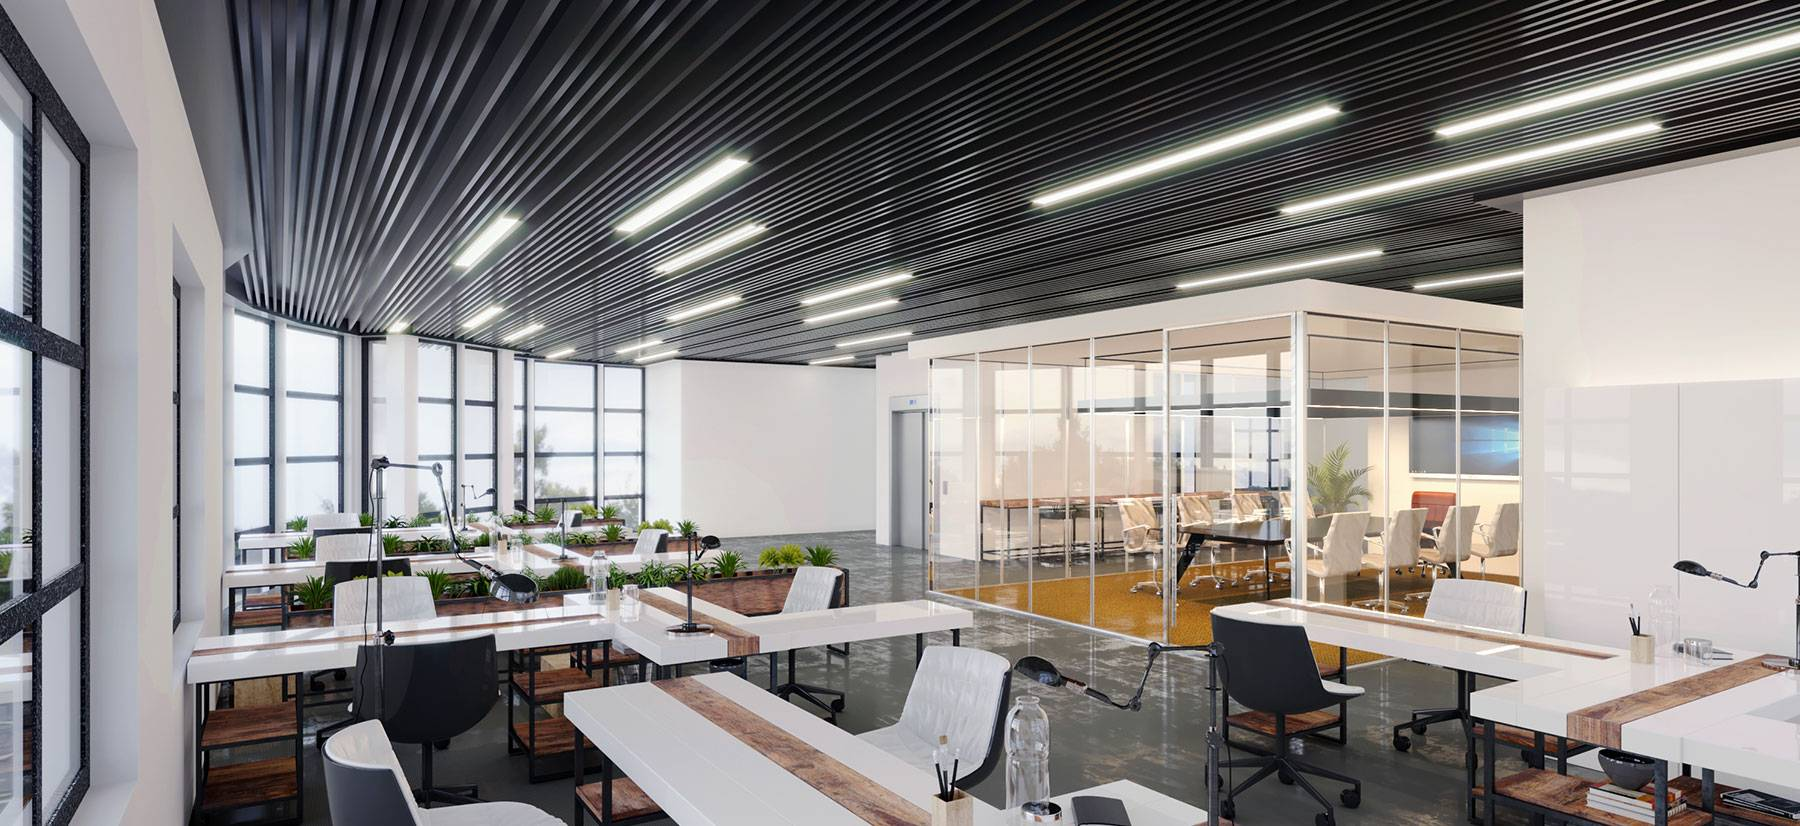 sample office project by the City government of Mountain View